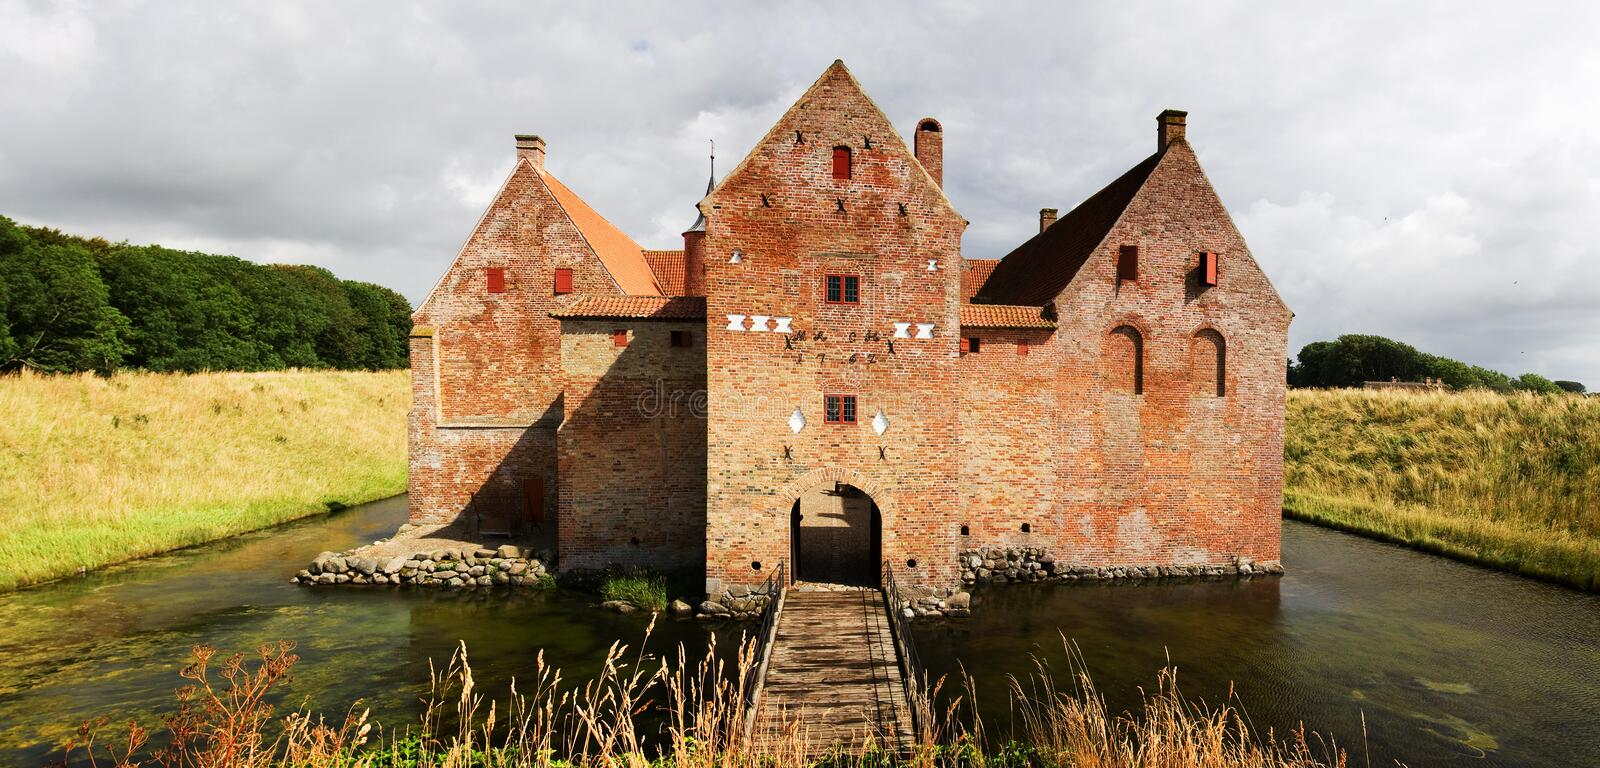 Download Castle With Moat In Denmark Stock Image - Image: 11227723